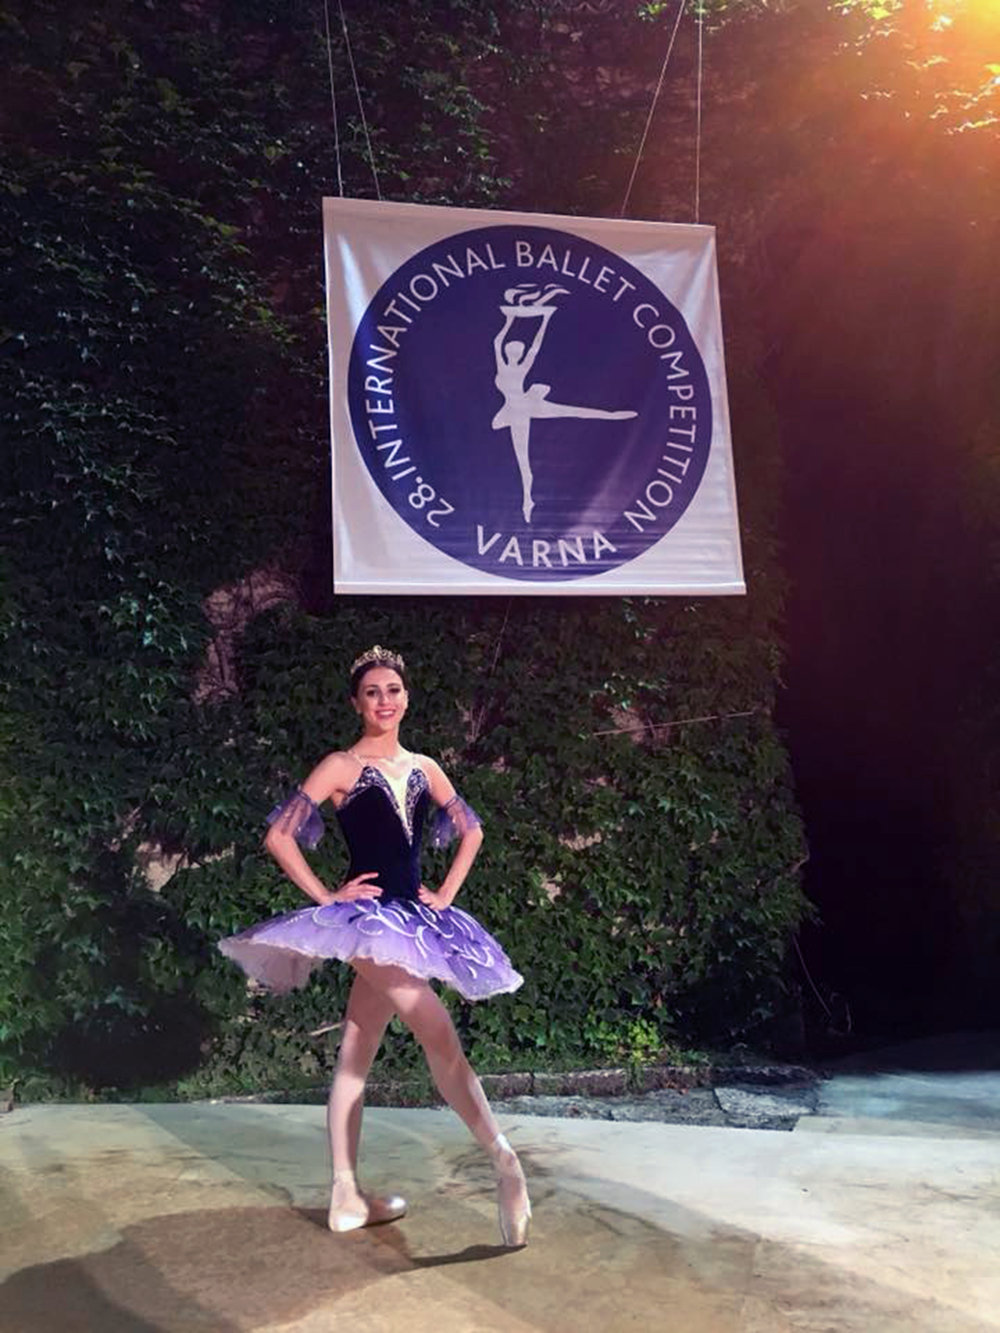 Varna International Competition silver medalist Katherine Barkman smiles triumphantly after performing in the winners' gala capping the two-week competition.